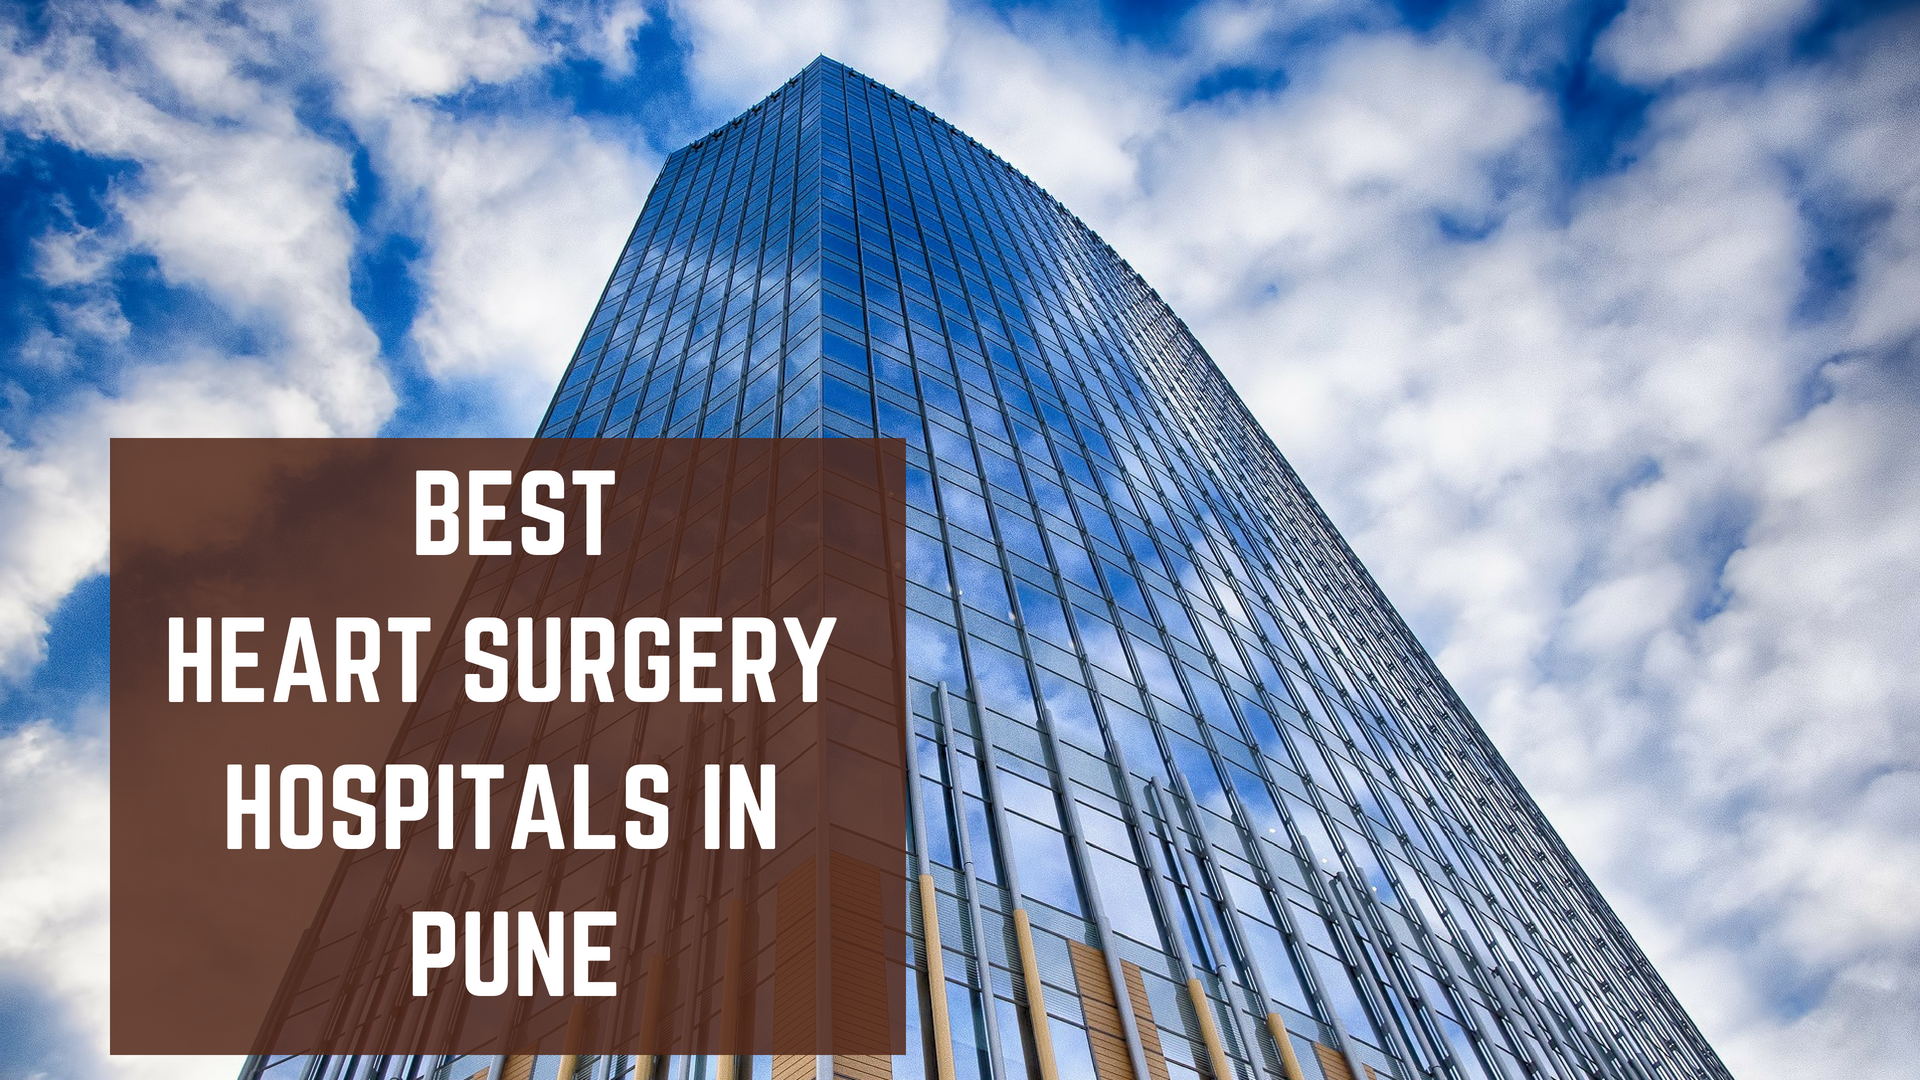 Top 10 Best Heart Surgery Hospitals In Pune Essencz